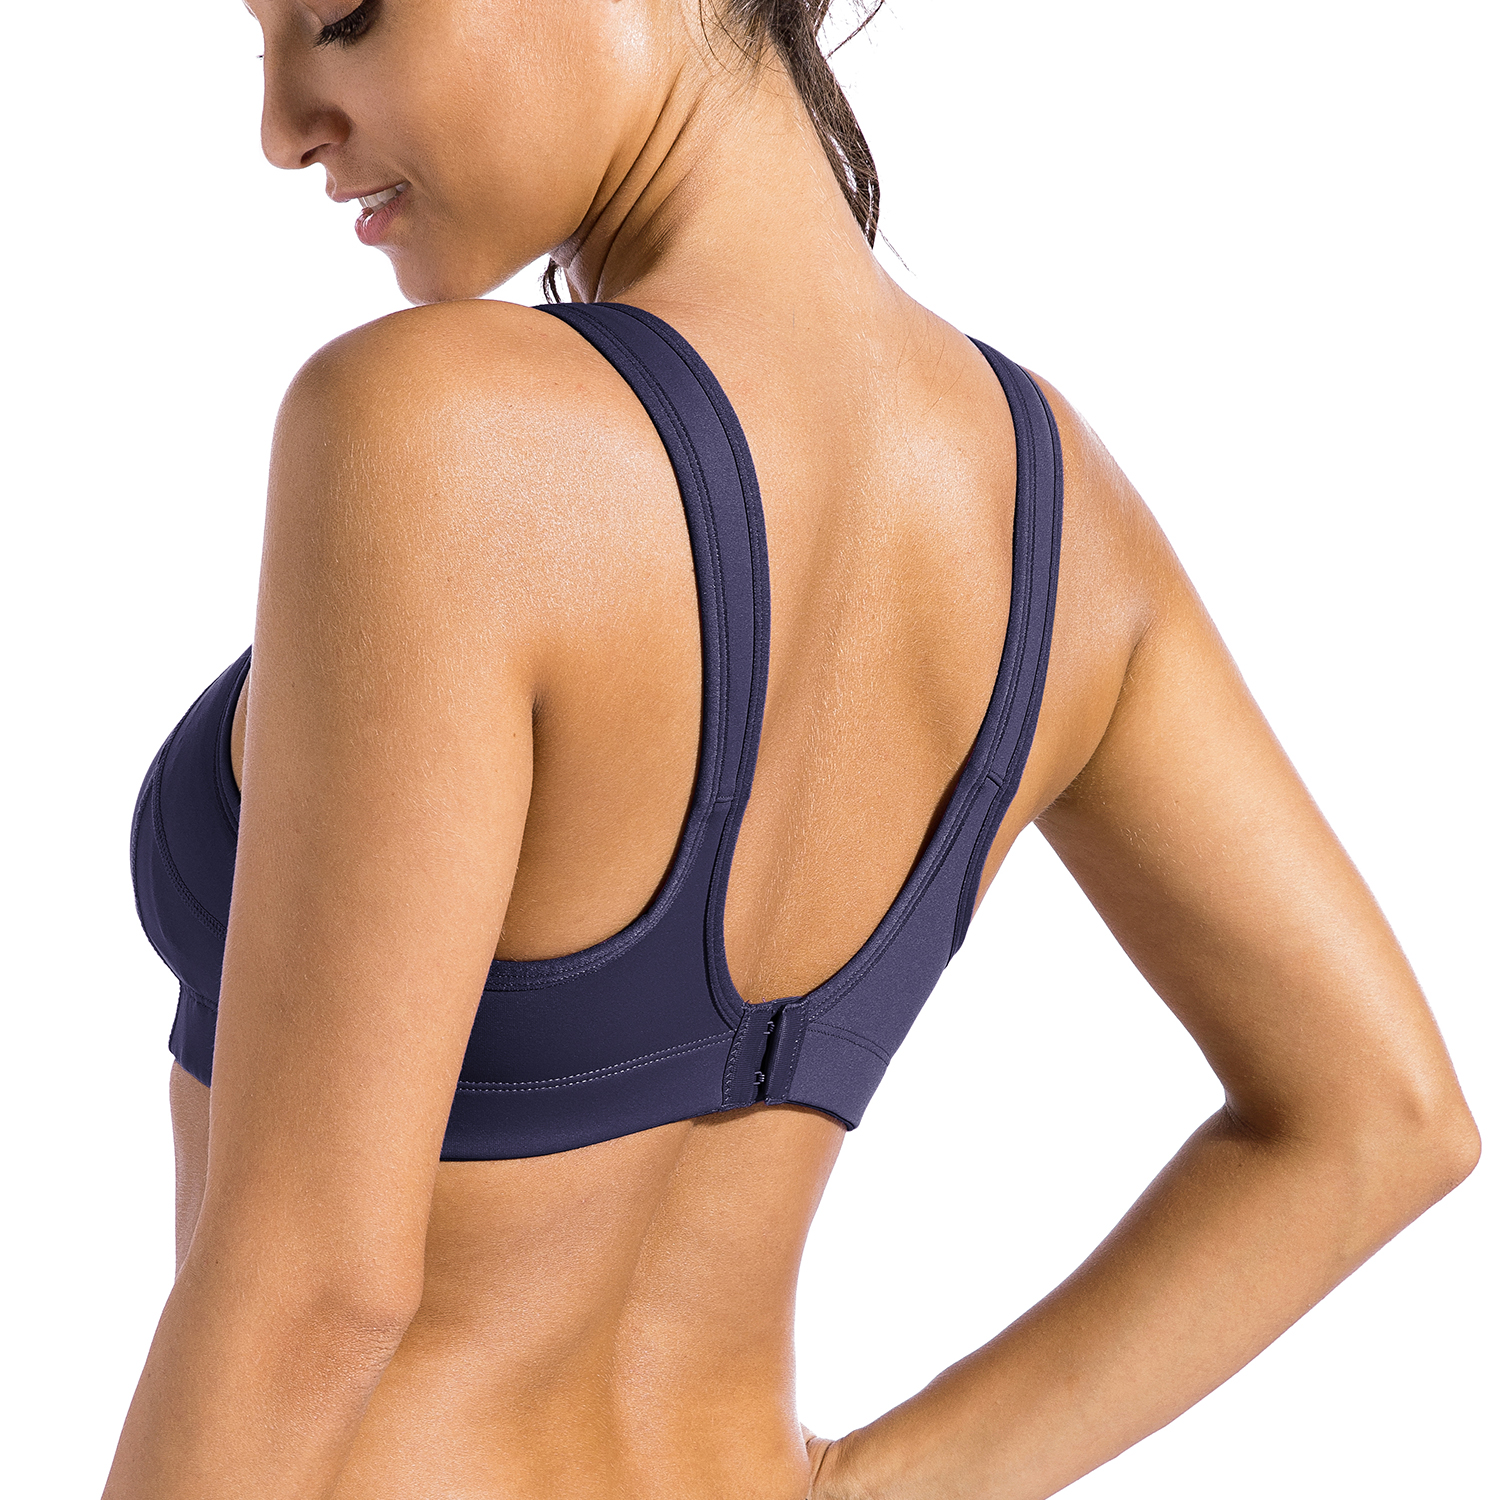 Women-039-s-Bounce-Control-Wire-Free-High-Impact-Max-Support-Sports-Bra thumbnail 24